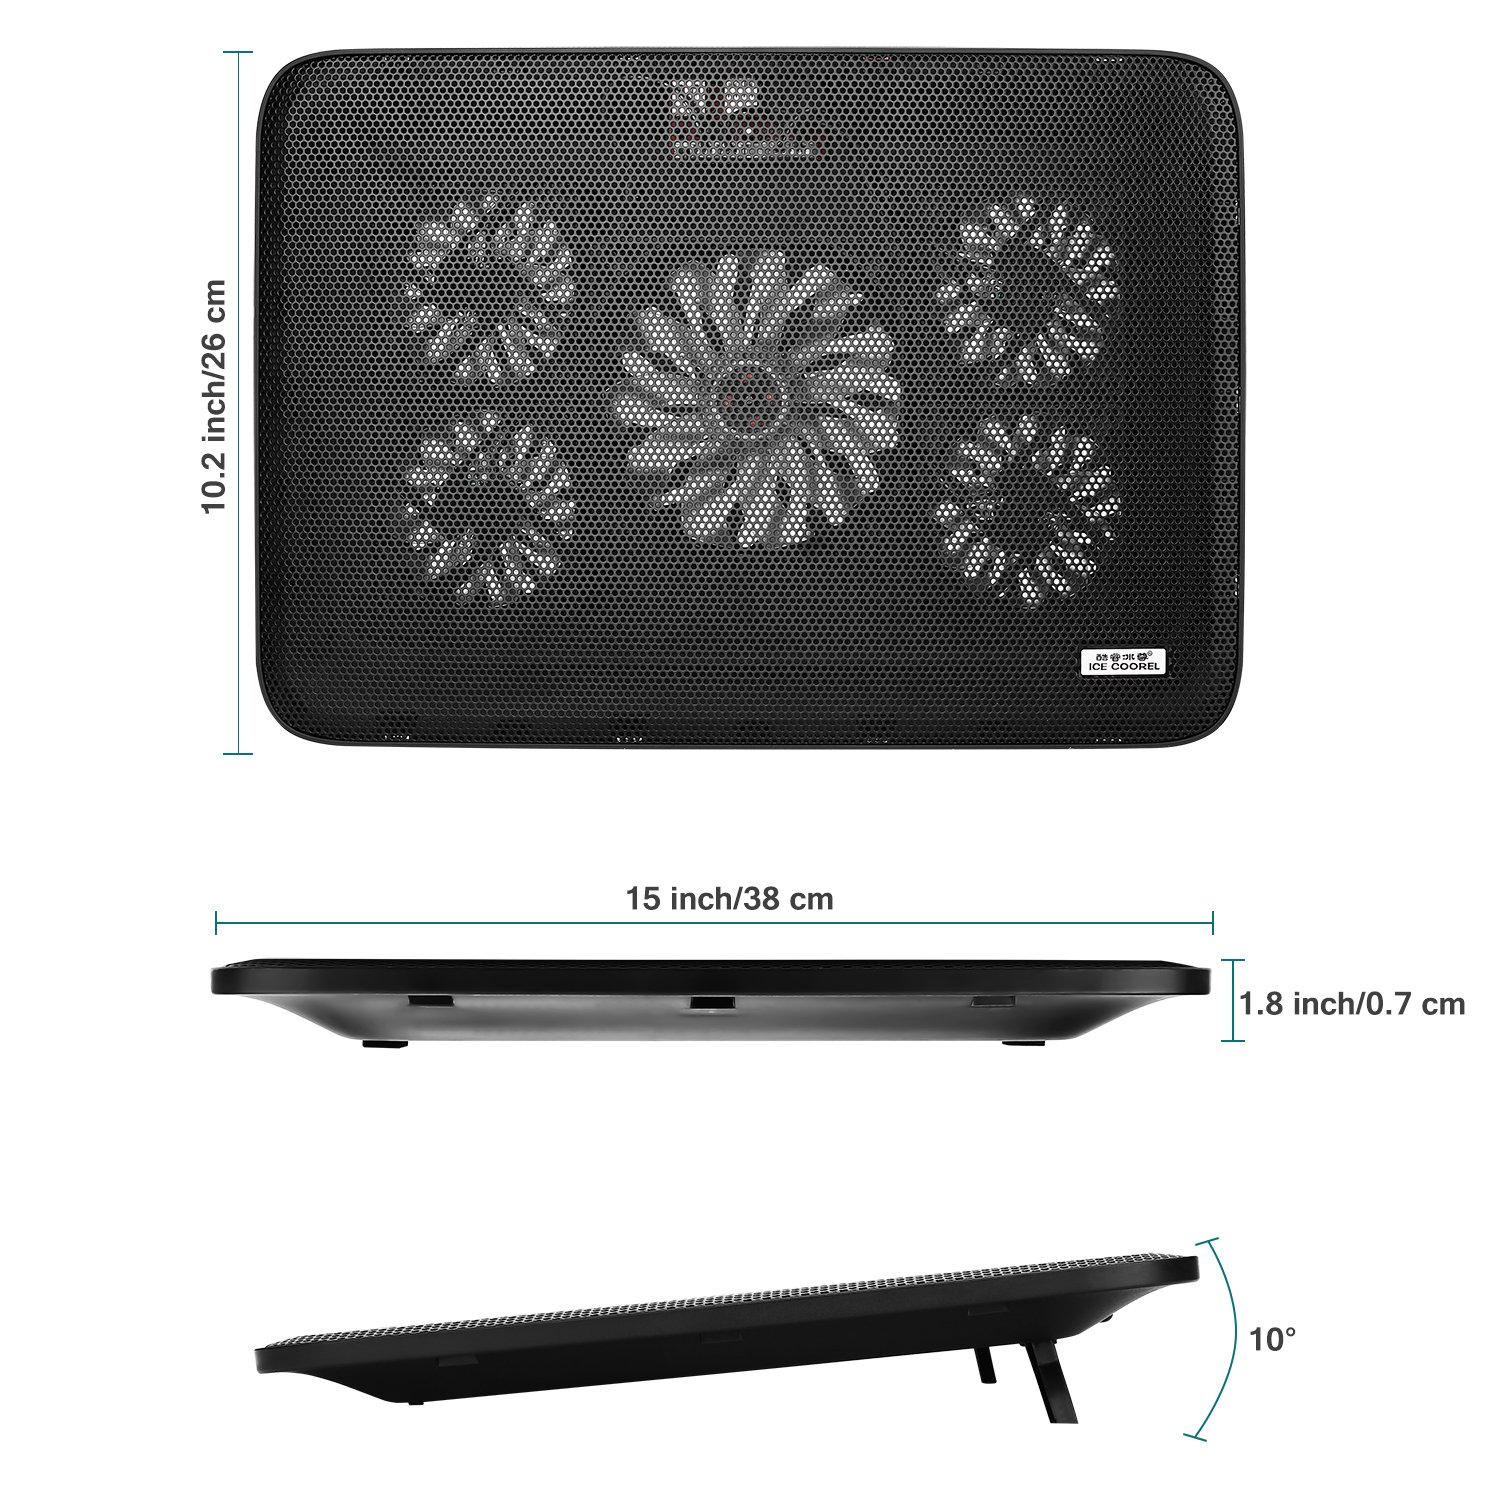 NO.17 Laptop Cooler Cooling pad, Portable Ultra-Slim Quiet Laptop Cooling Pad with 5 USB Powered Fans, Fits 10-15.6 inches by NO.17 (Image #2)